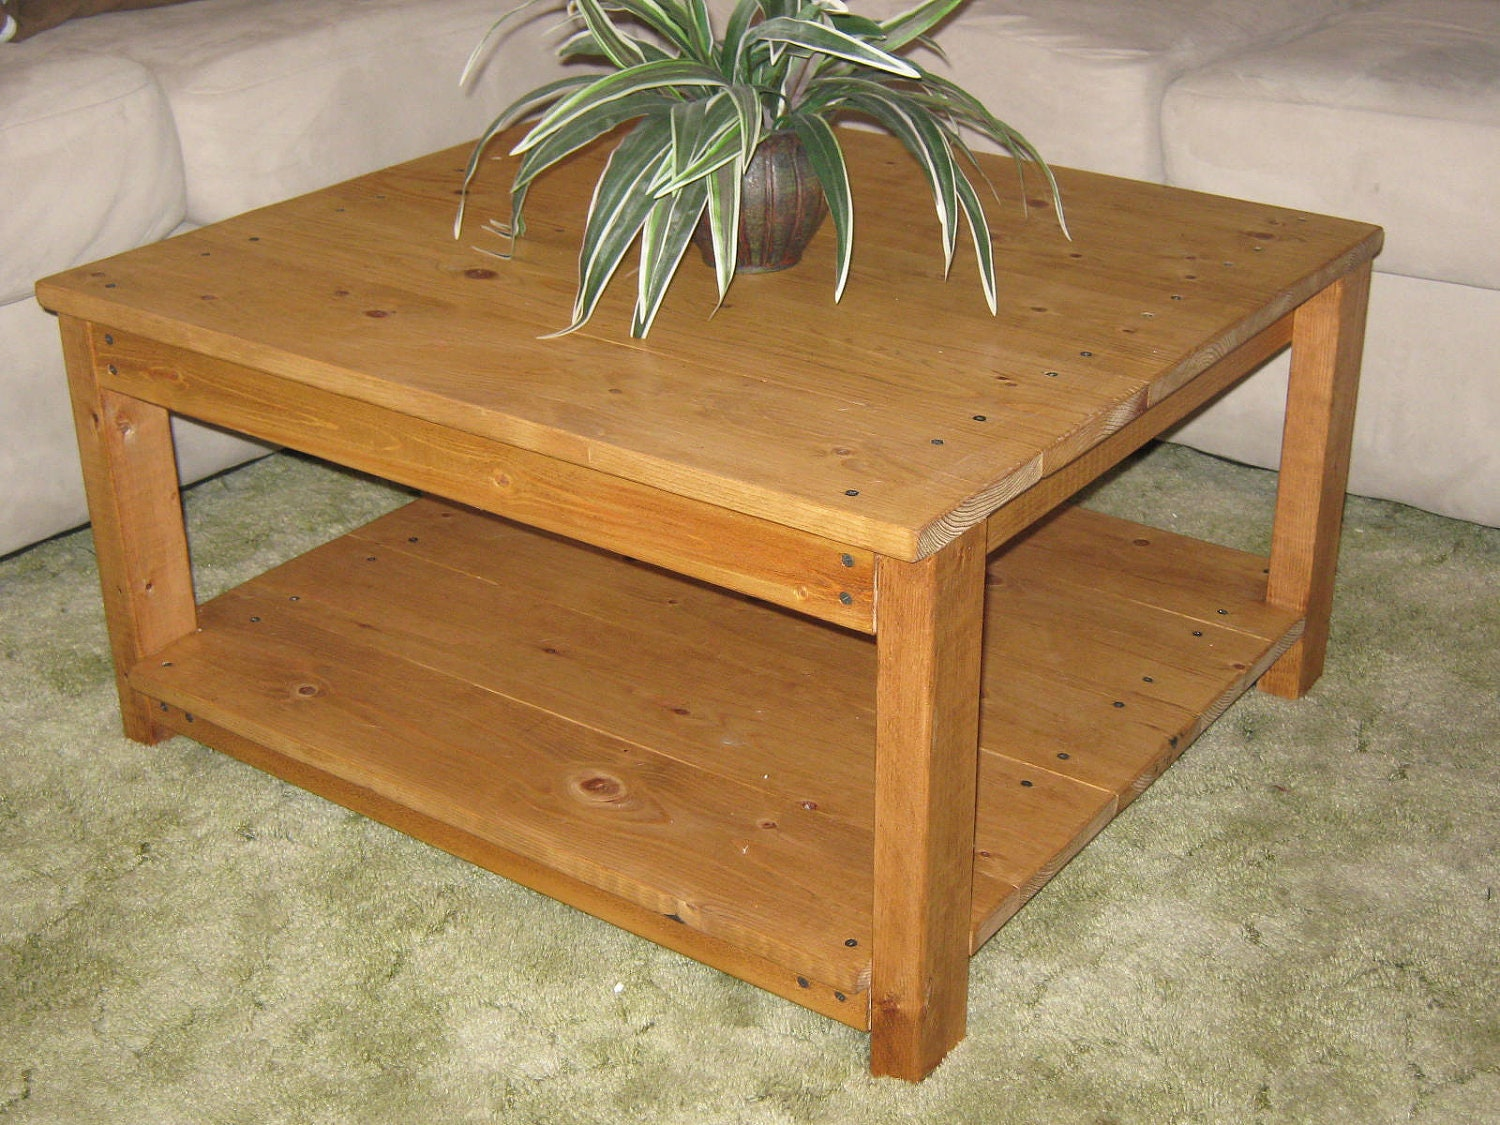 Build A Wood Coffee Table Quick Woodworking Projects